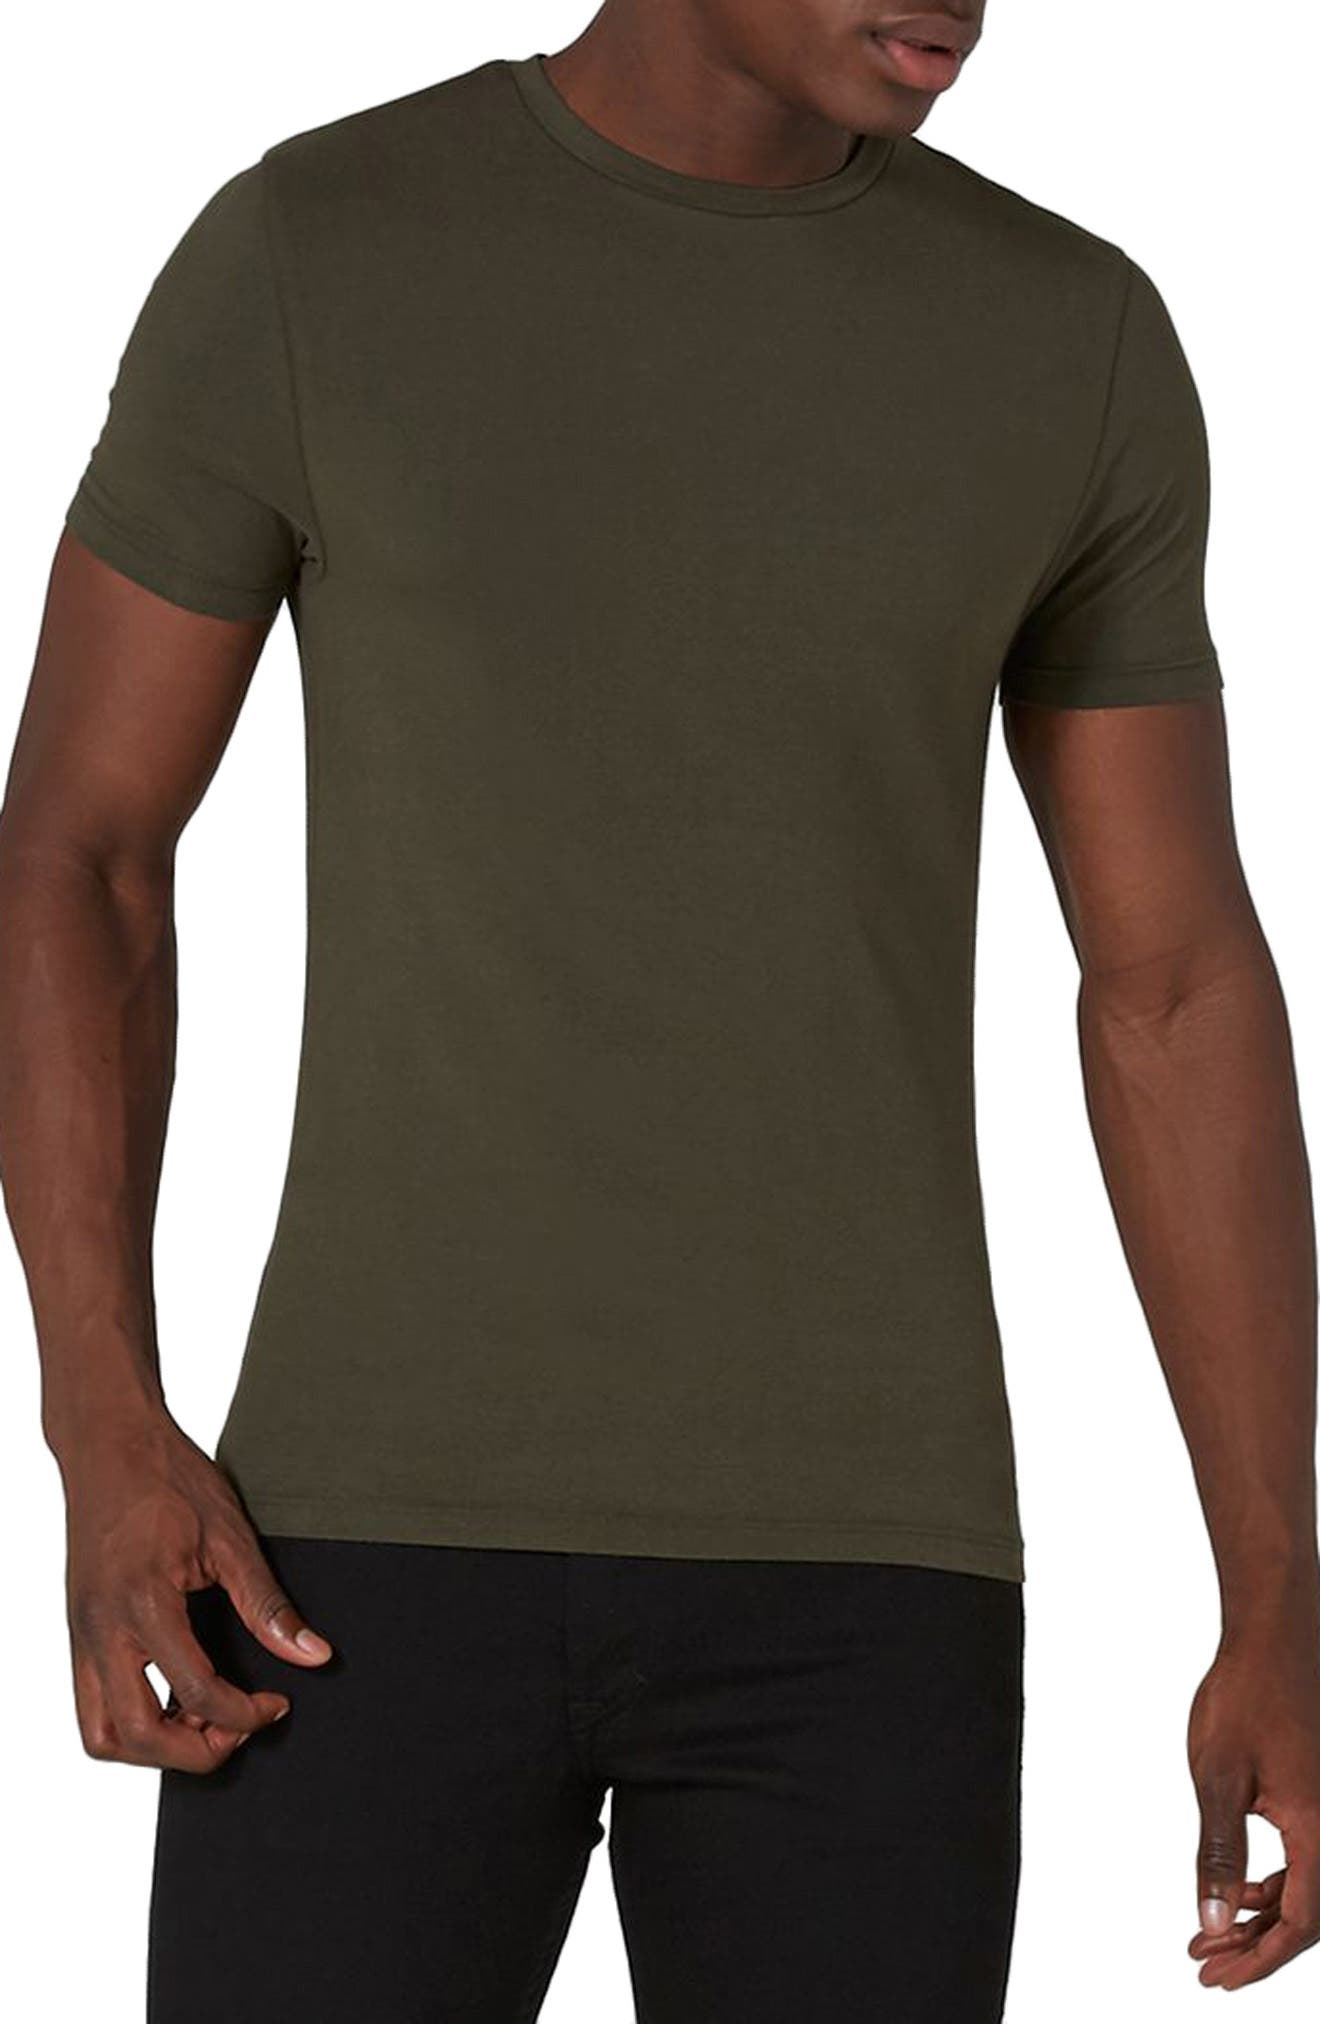 Ultra Muscle Fit T-Shirt,                             Main thumbnail 1, color,                             Olive